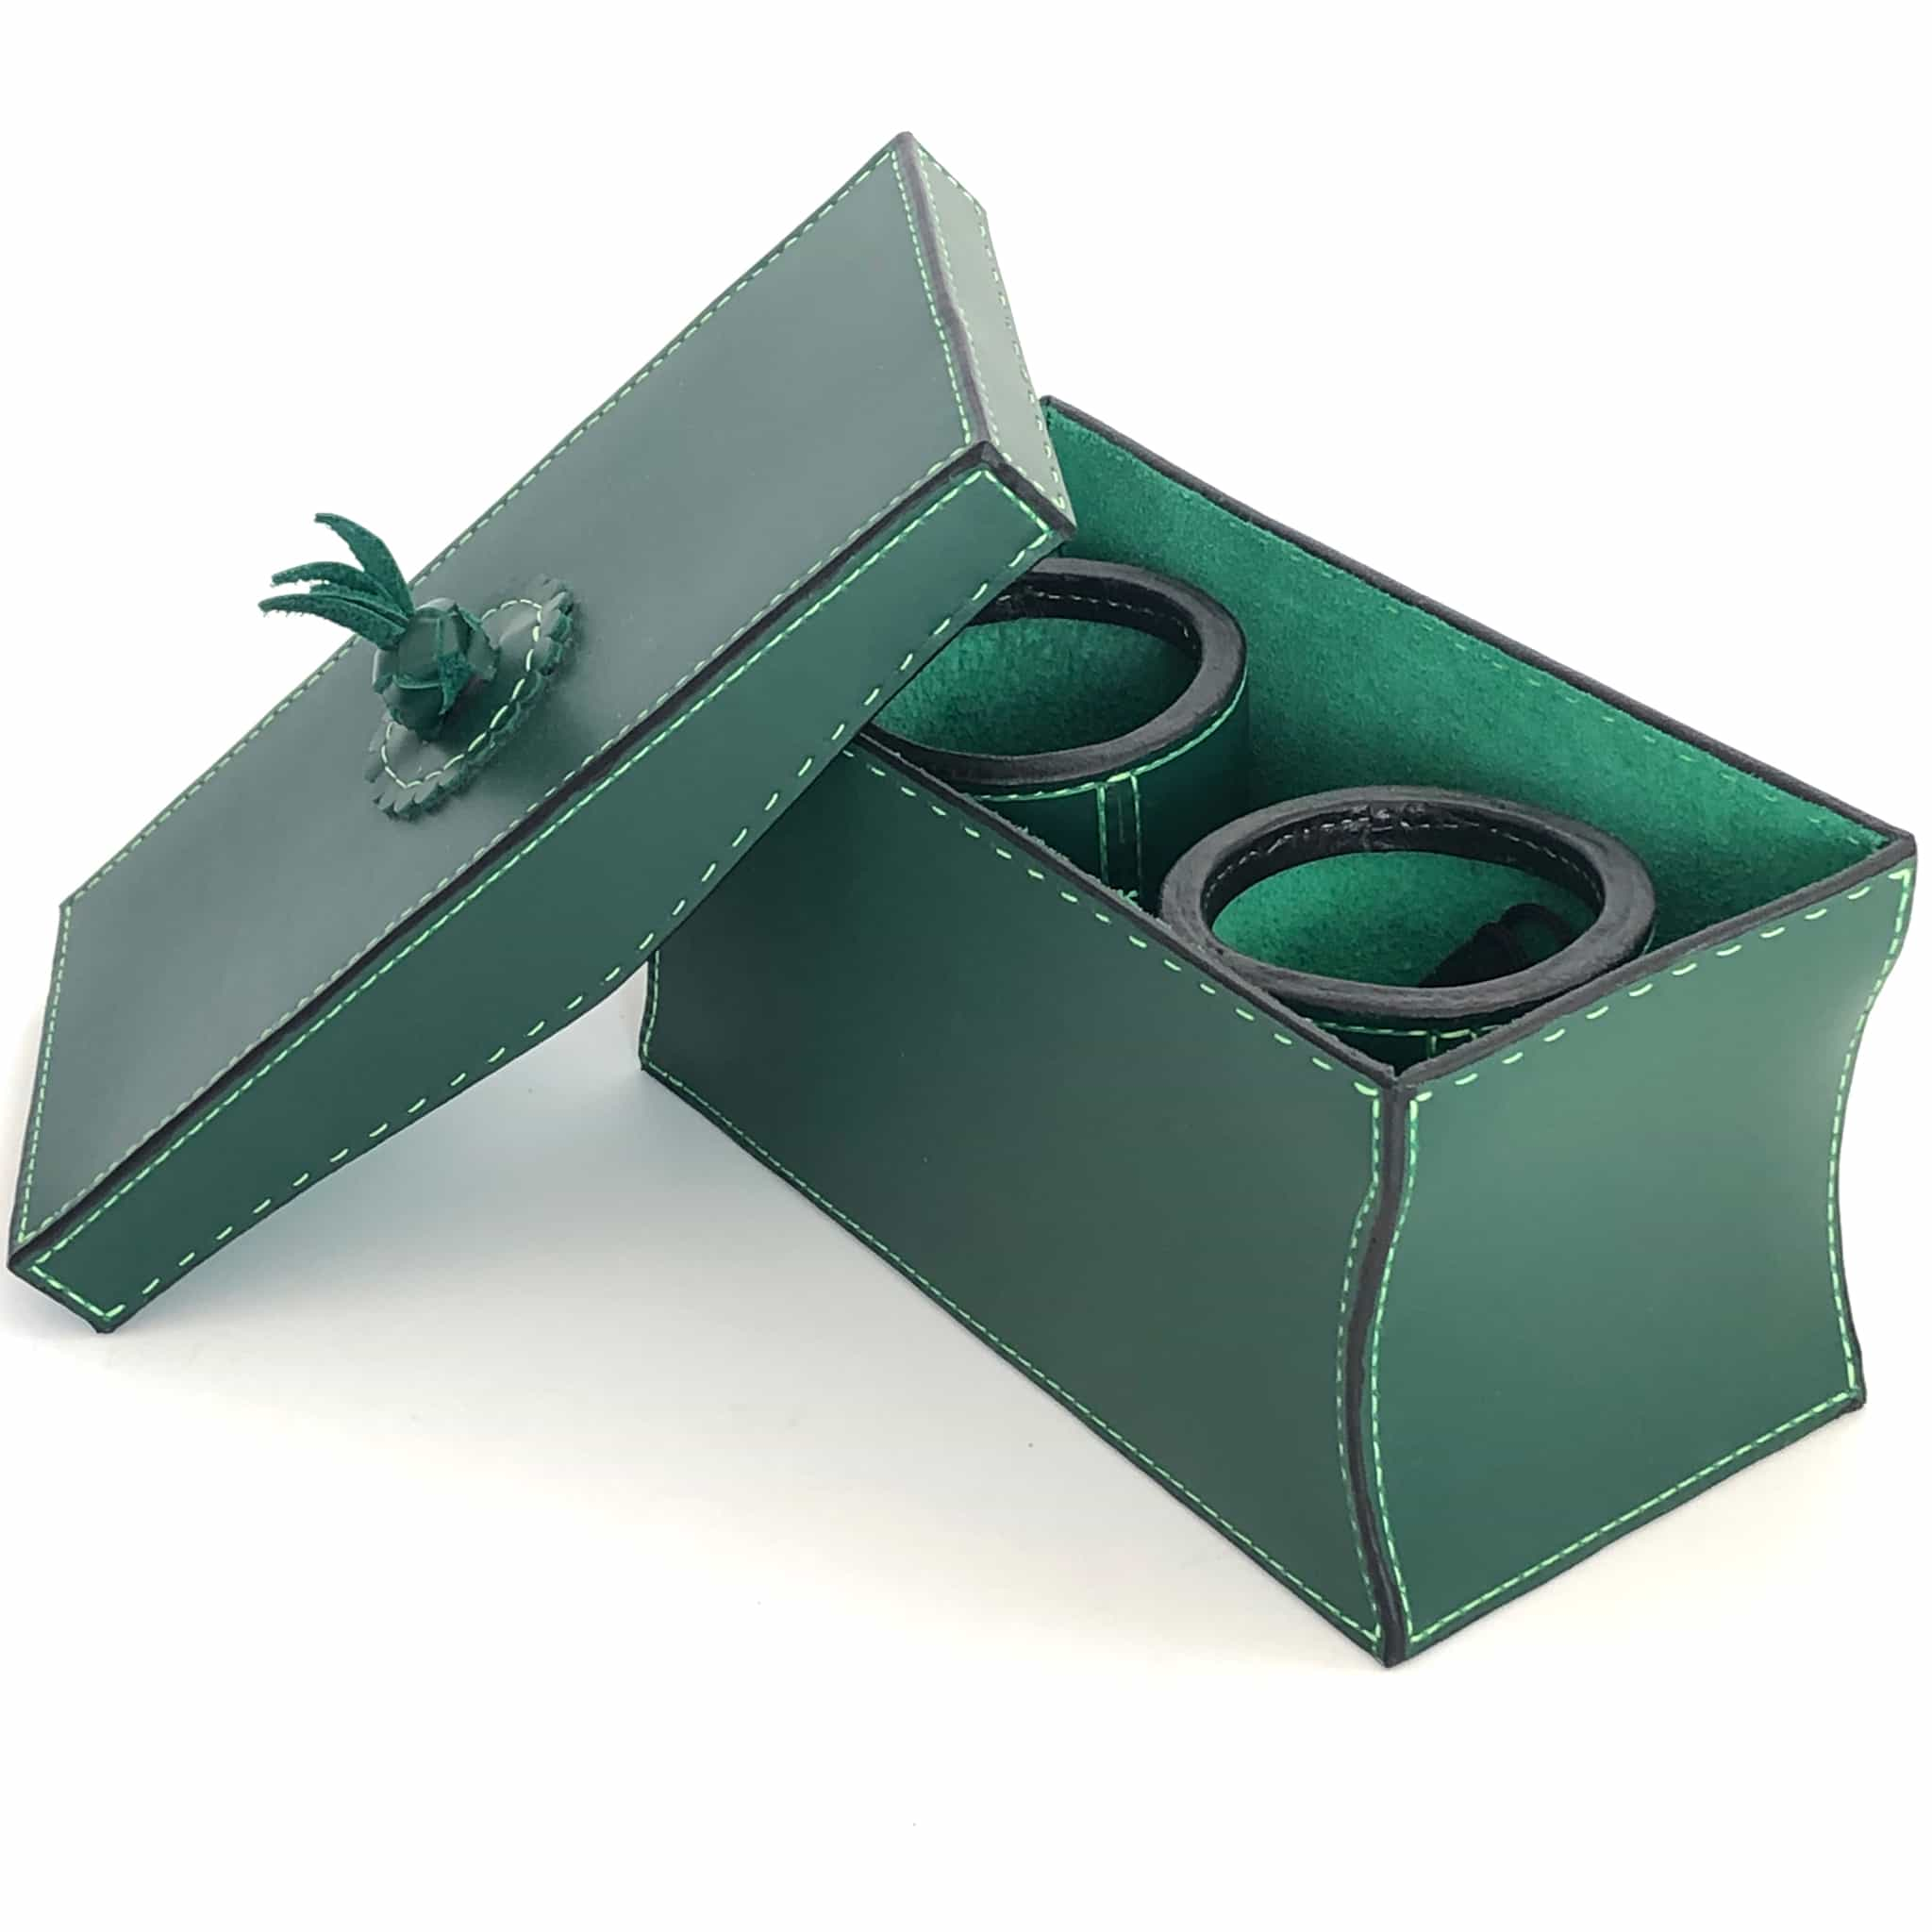 Dice cups and game box in forrest green with lid off